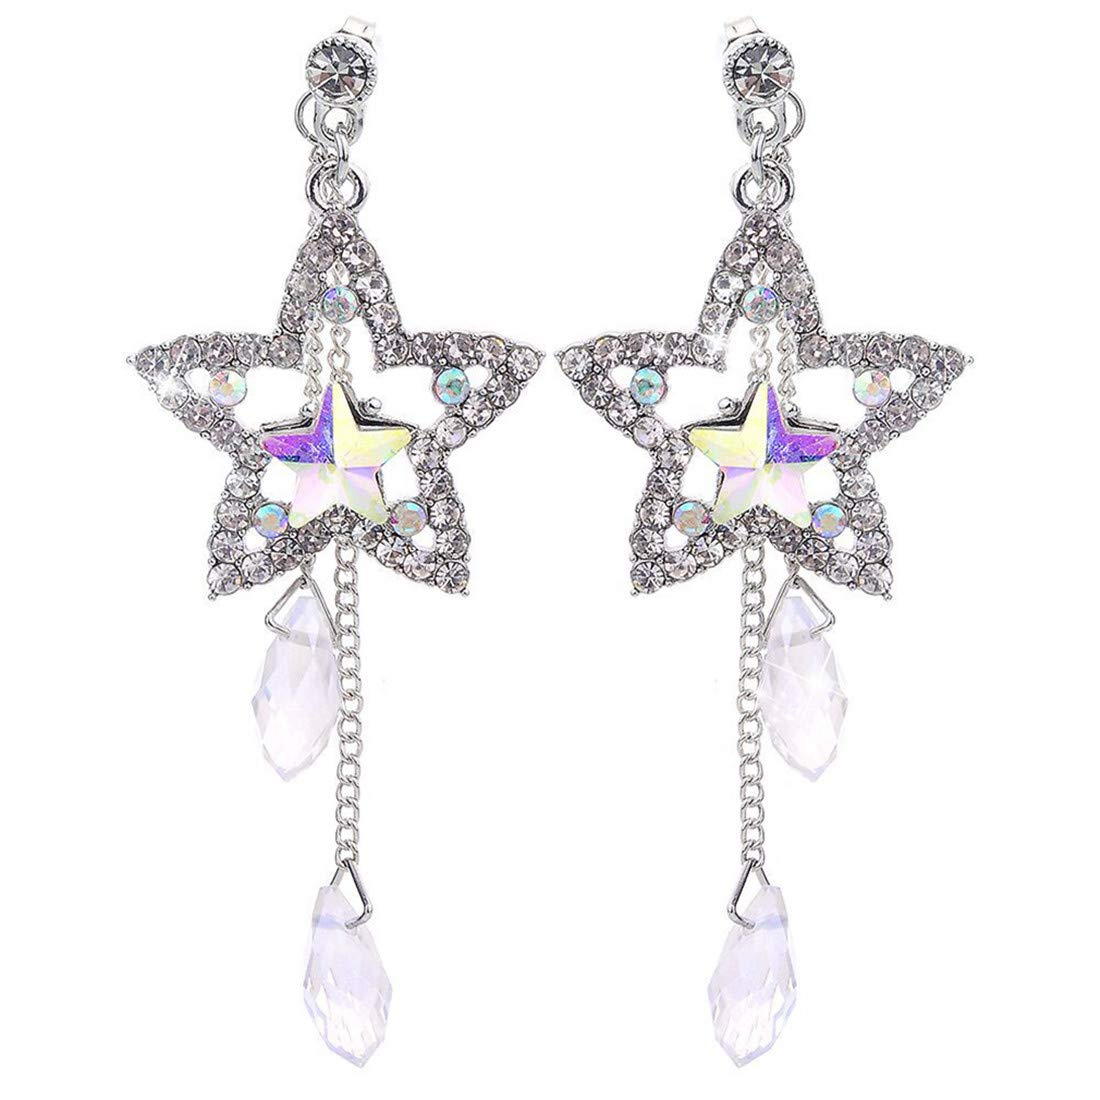 VWH Crystal Long Chain Earrings Pentagram Earrings Set for Women Engagement Wedding Jewelry Gifts